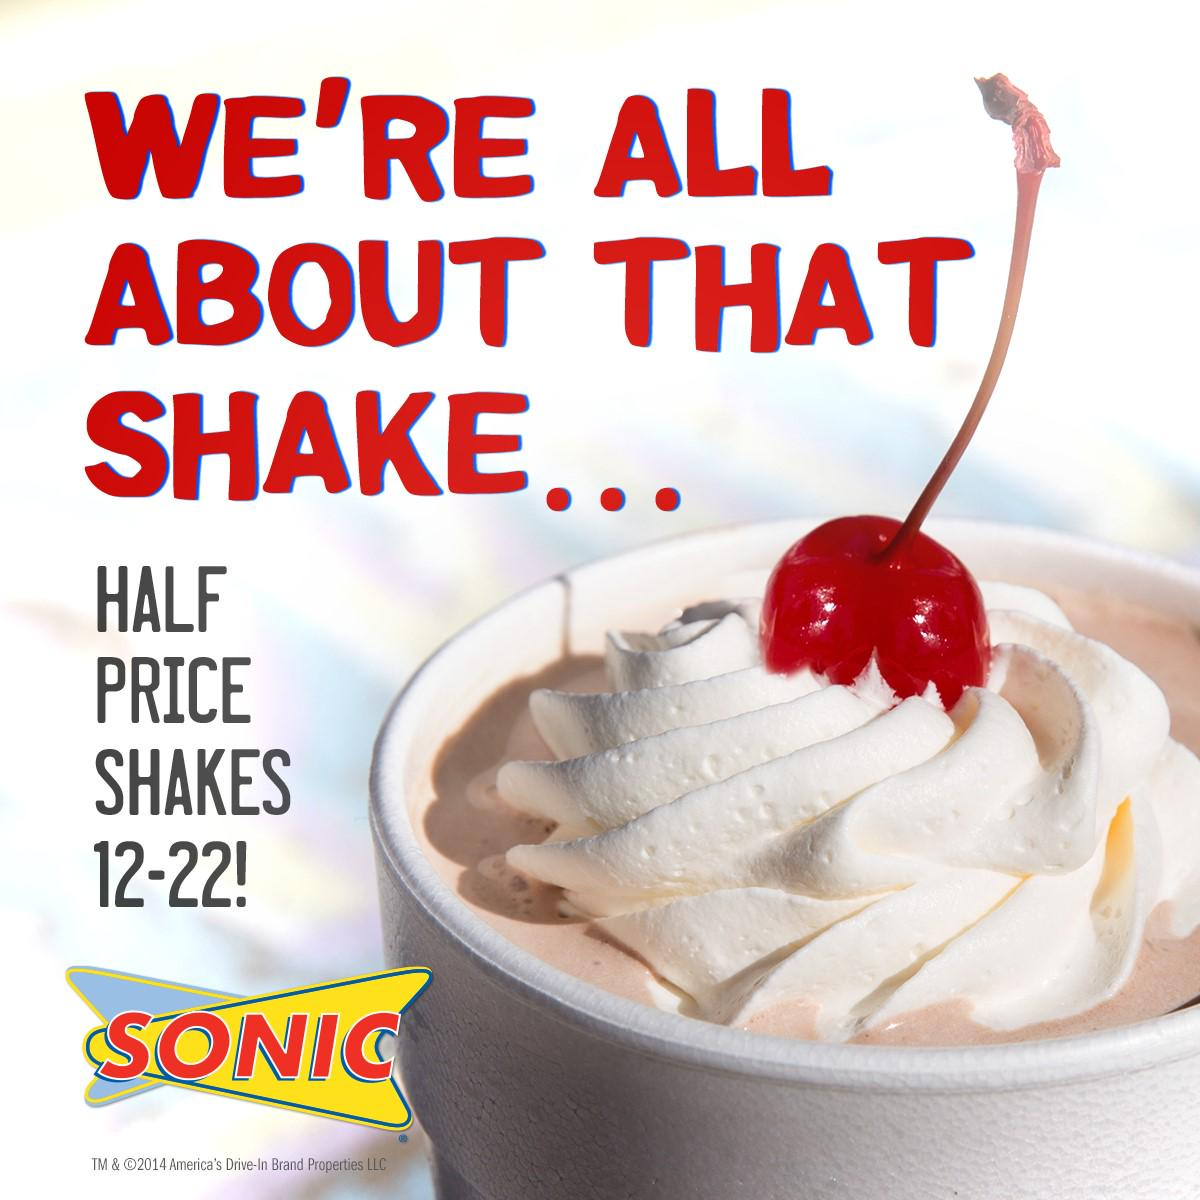 White Sonic Portland On Is Our Winter Solstice Half Price Shakesall Day Sonic Portland On Is Our Winter Solstice Half Price Sonic Half Price Shakes After 8 Dates Sonic Half Price Shakes App nice food Sonic Half Price Shakes